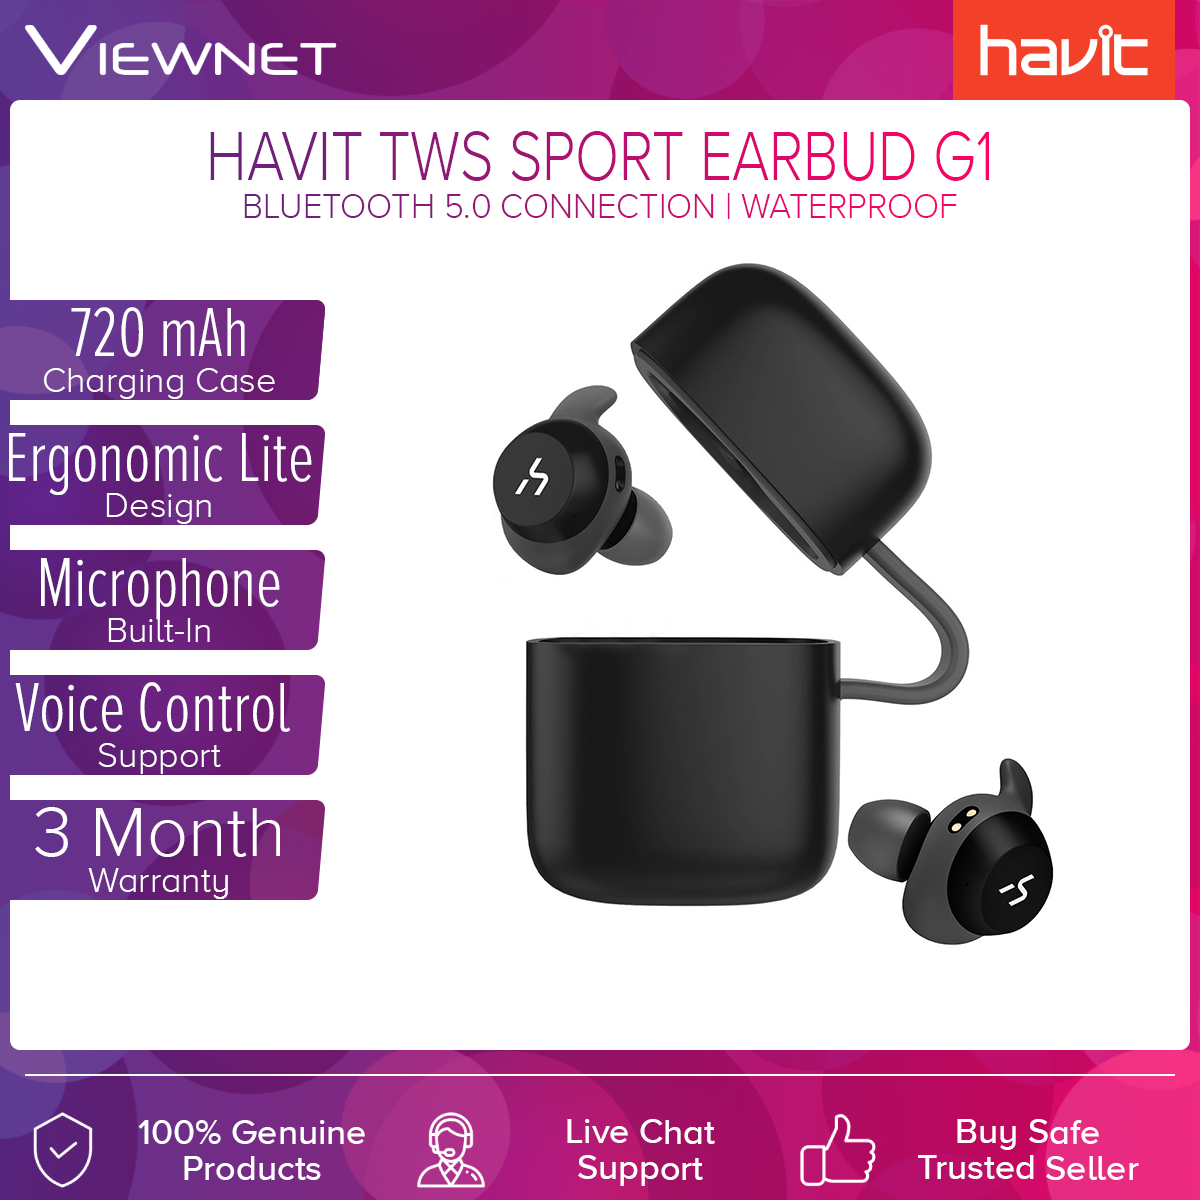 Havit G1 / G1 Pro IPX5 Waterproof TWS True Wireless Sports Bluetooth V5.0 Earphone Stereo Earbuds With 720mAh Charging Case Microphone Voice Control One-key SIRI Features